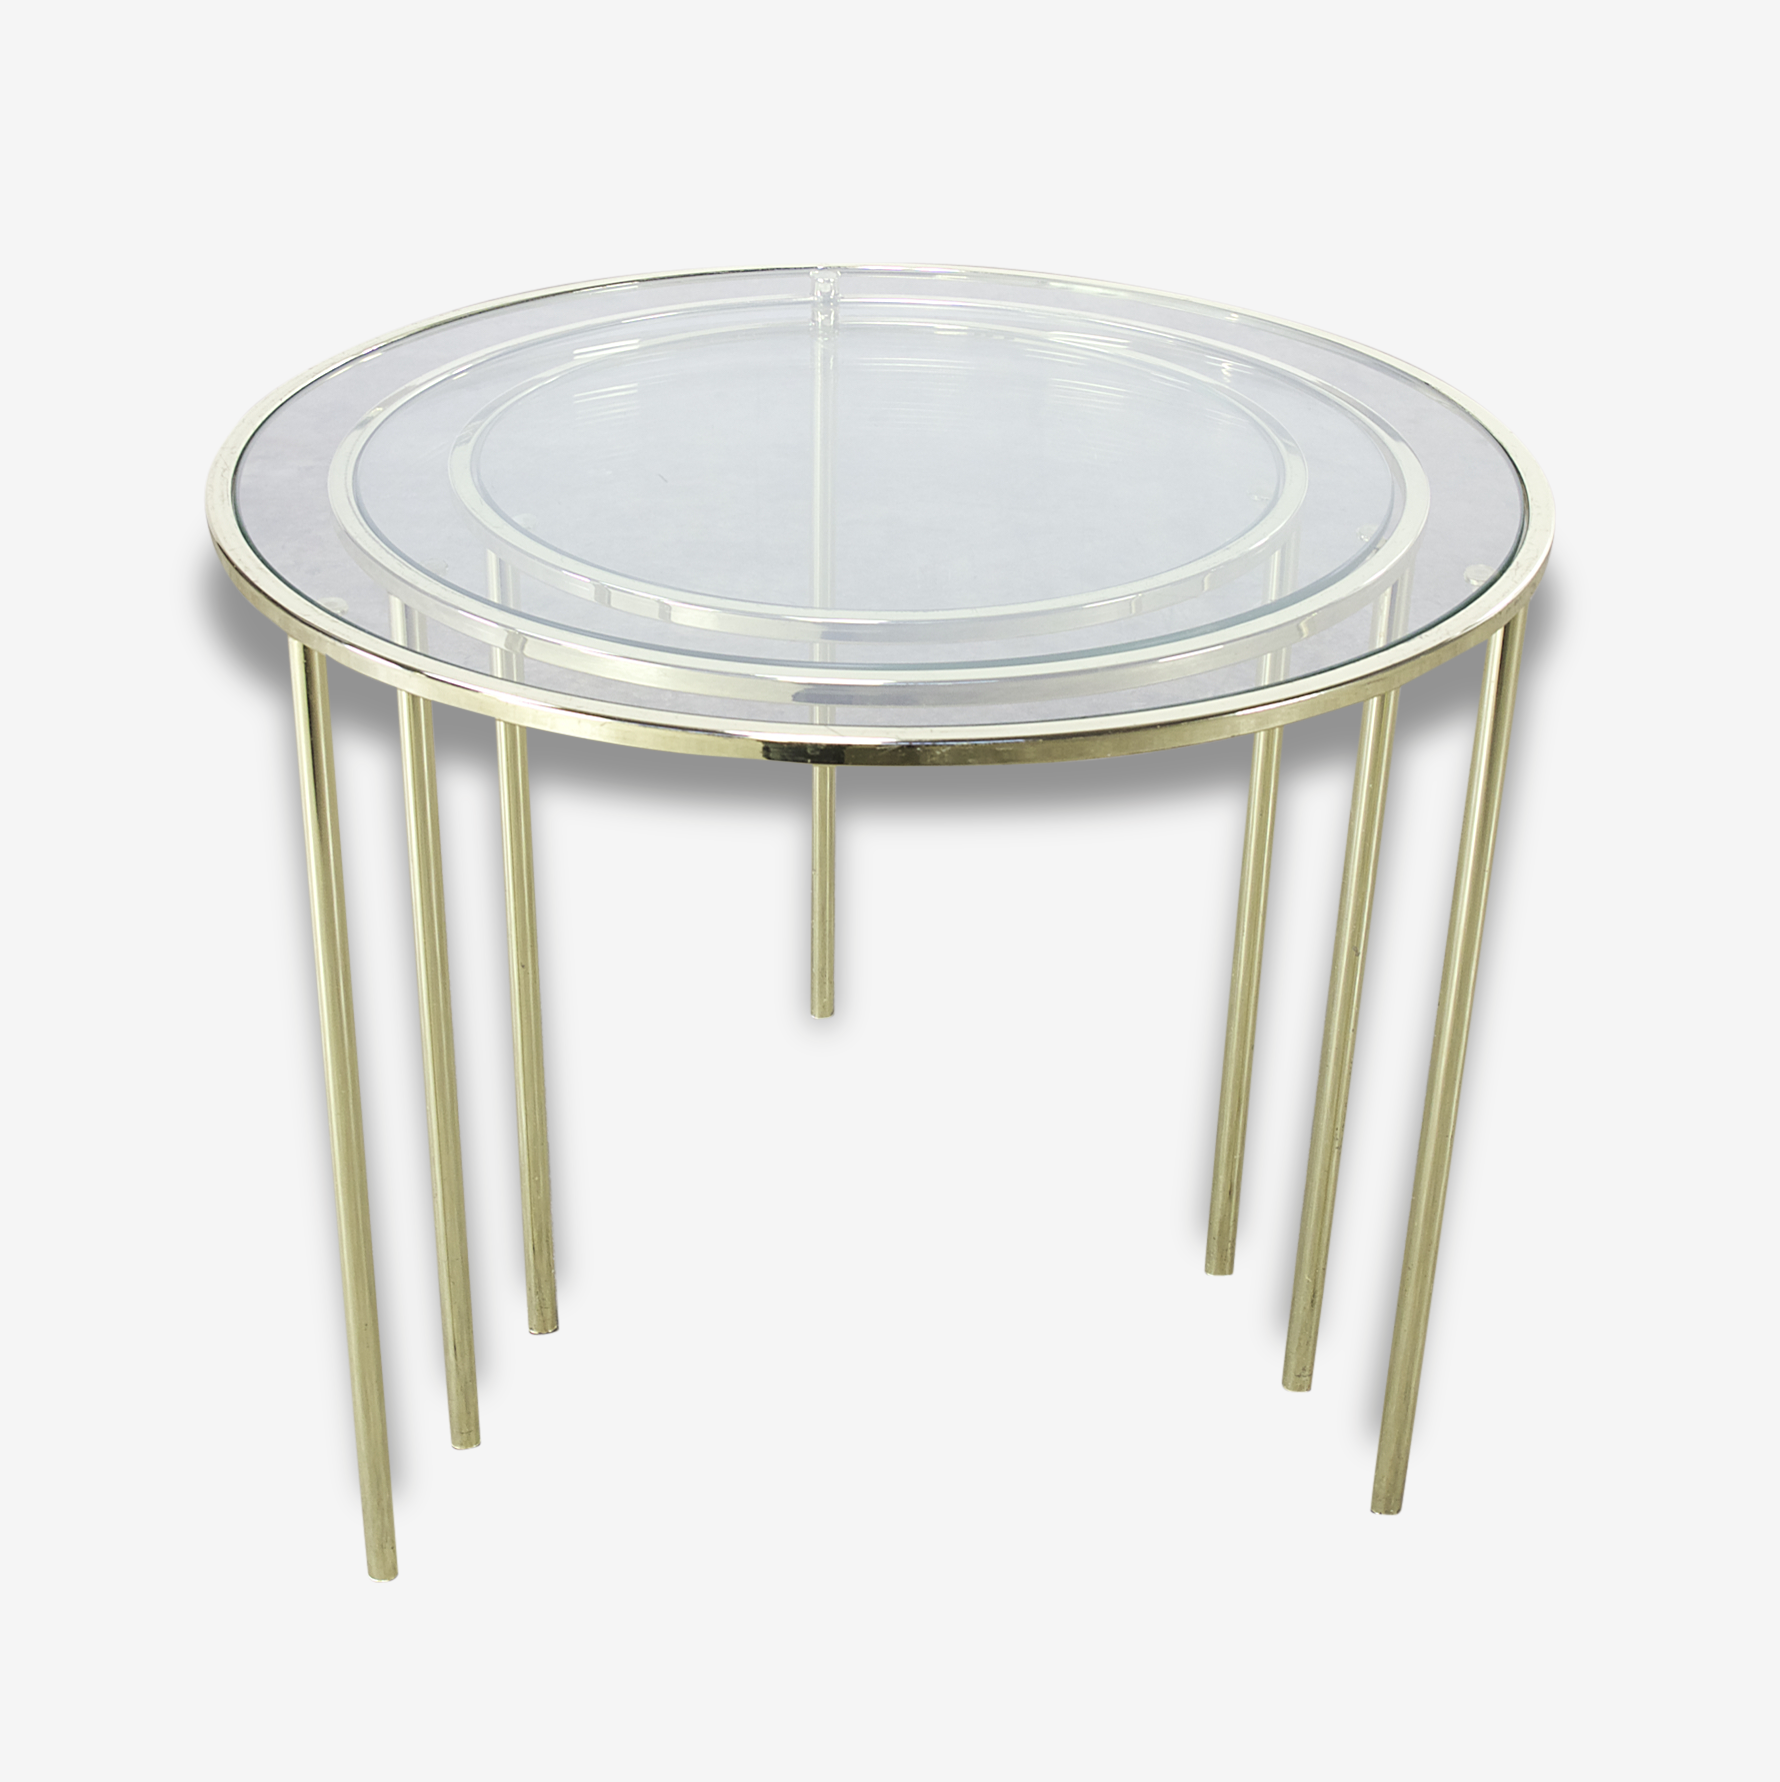 Midcentury Glass and Brass round nesting tables